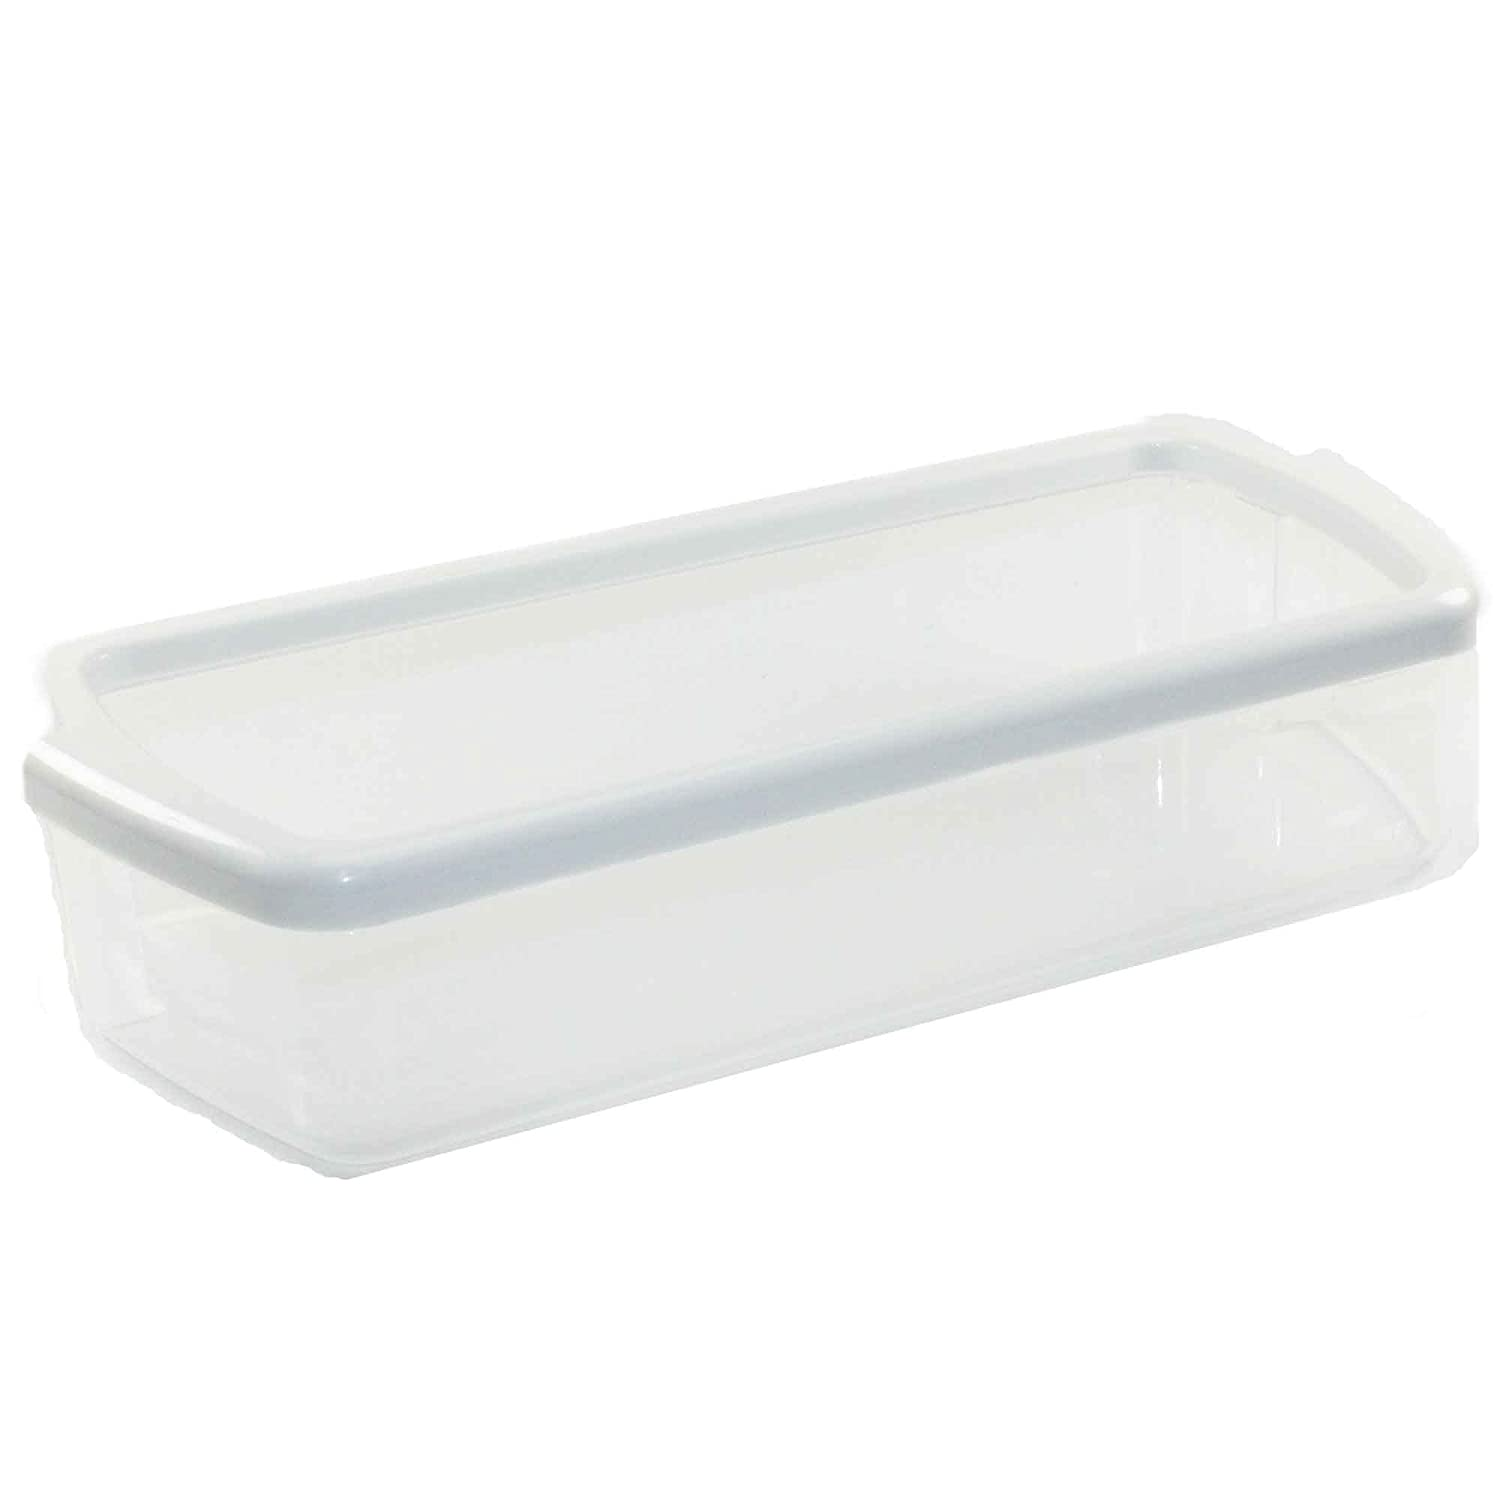 Supplying Demand SDW10321304 Refrigerator Door Bin Fits Whirlpool W10321304